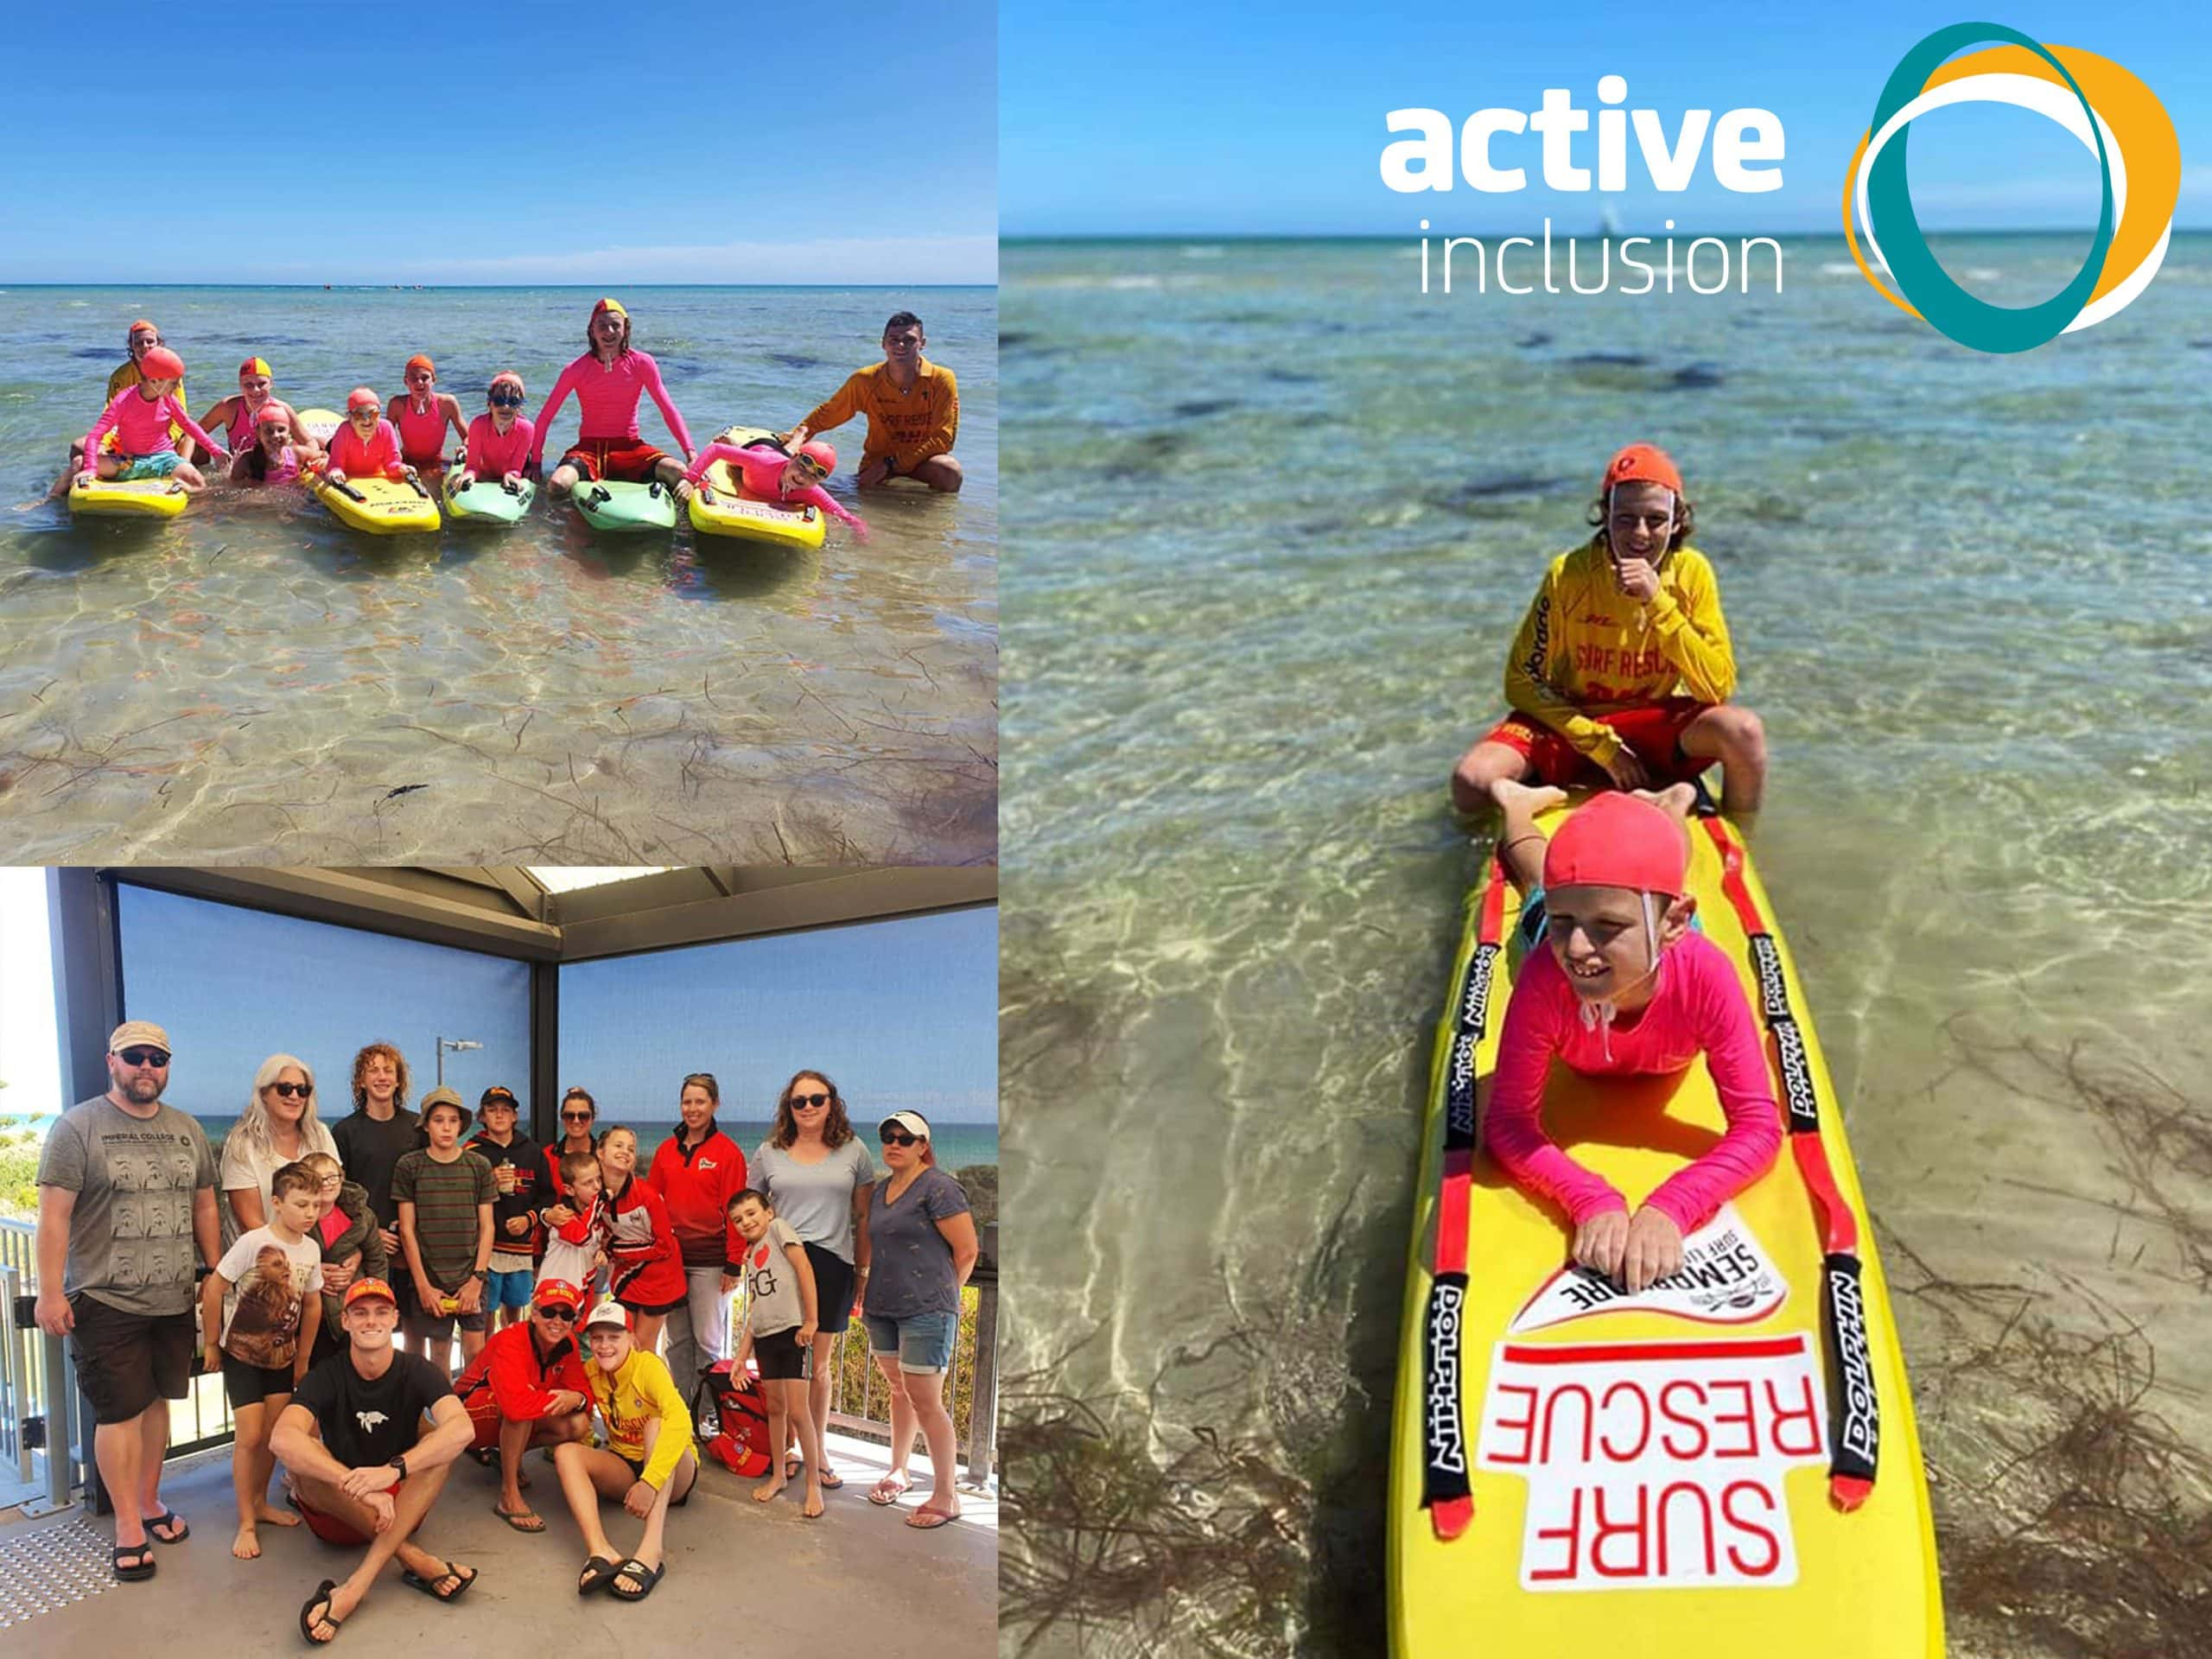 Three images make up graphic. First Image is of young Seabird Nippers members in the shallow water at the beach on surf life saving boards with their program buddies/instructors. Second photo shows a seabird nippers participant and their buddy on a board in the water. Third image shows seabird nippers, their caregivers and program staff together. The Active Inclusion logo appears in the top right hand corner.